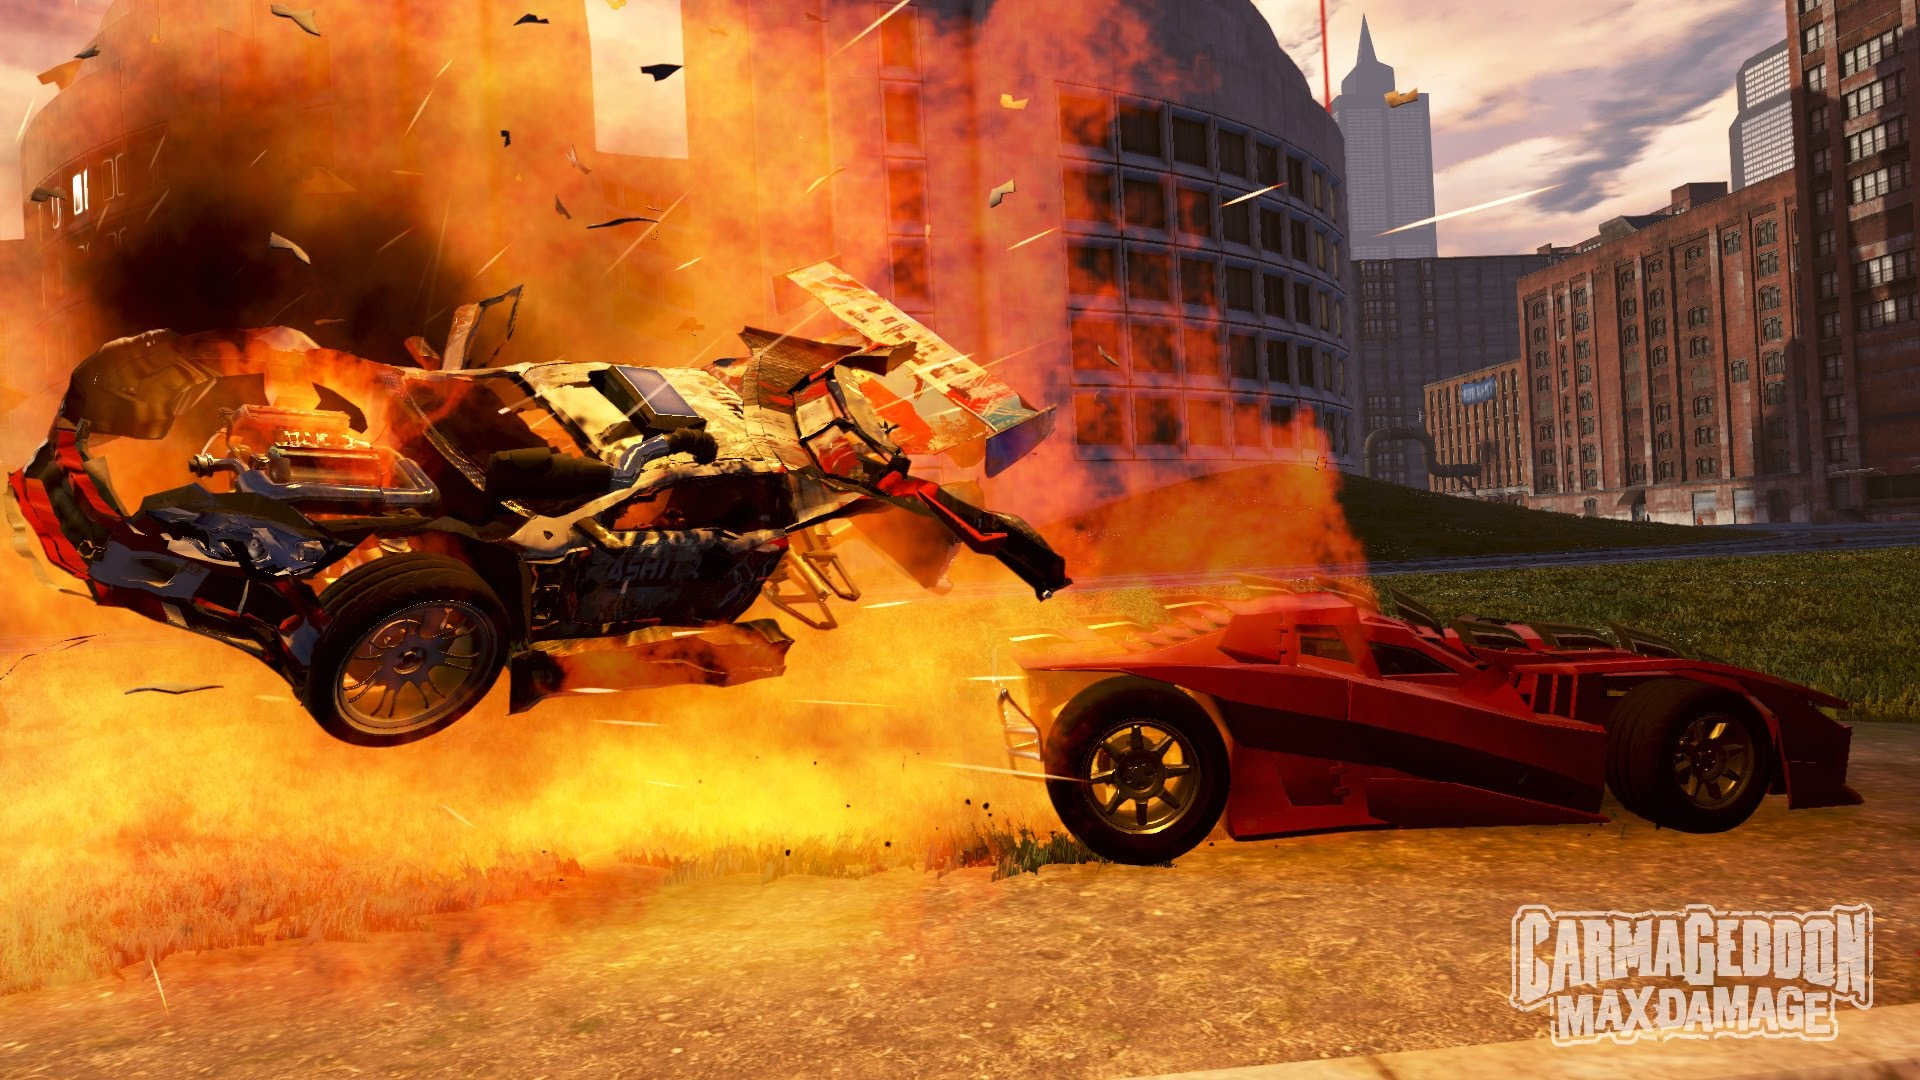 Carmageddon Max Damage explosion screenshot